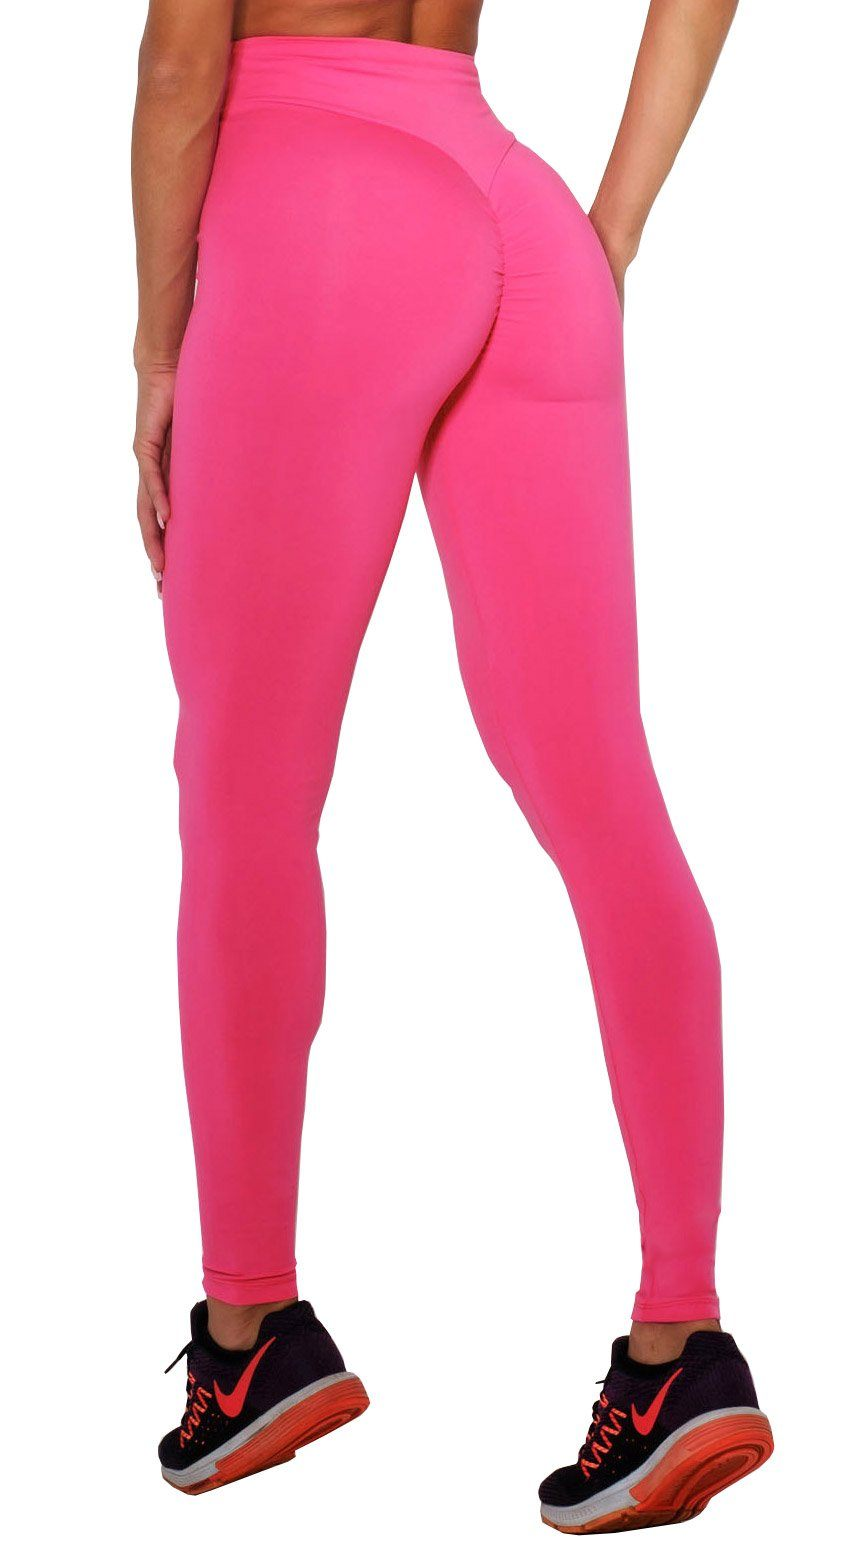 High Waist Scrunch Booty Lift Hot Pink Leggings